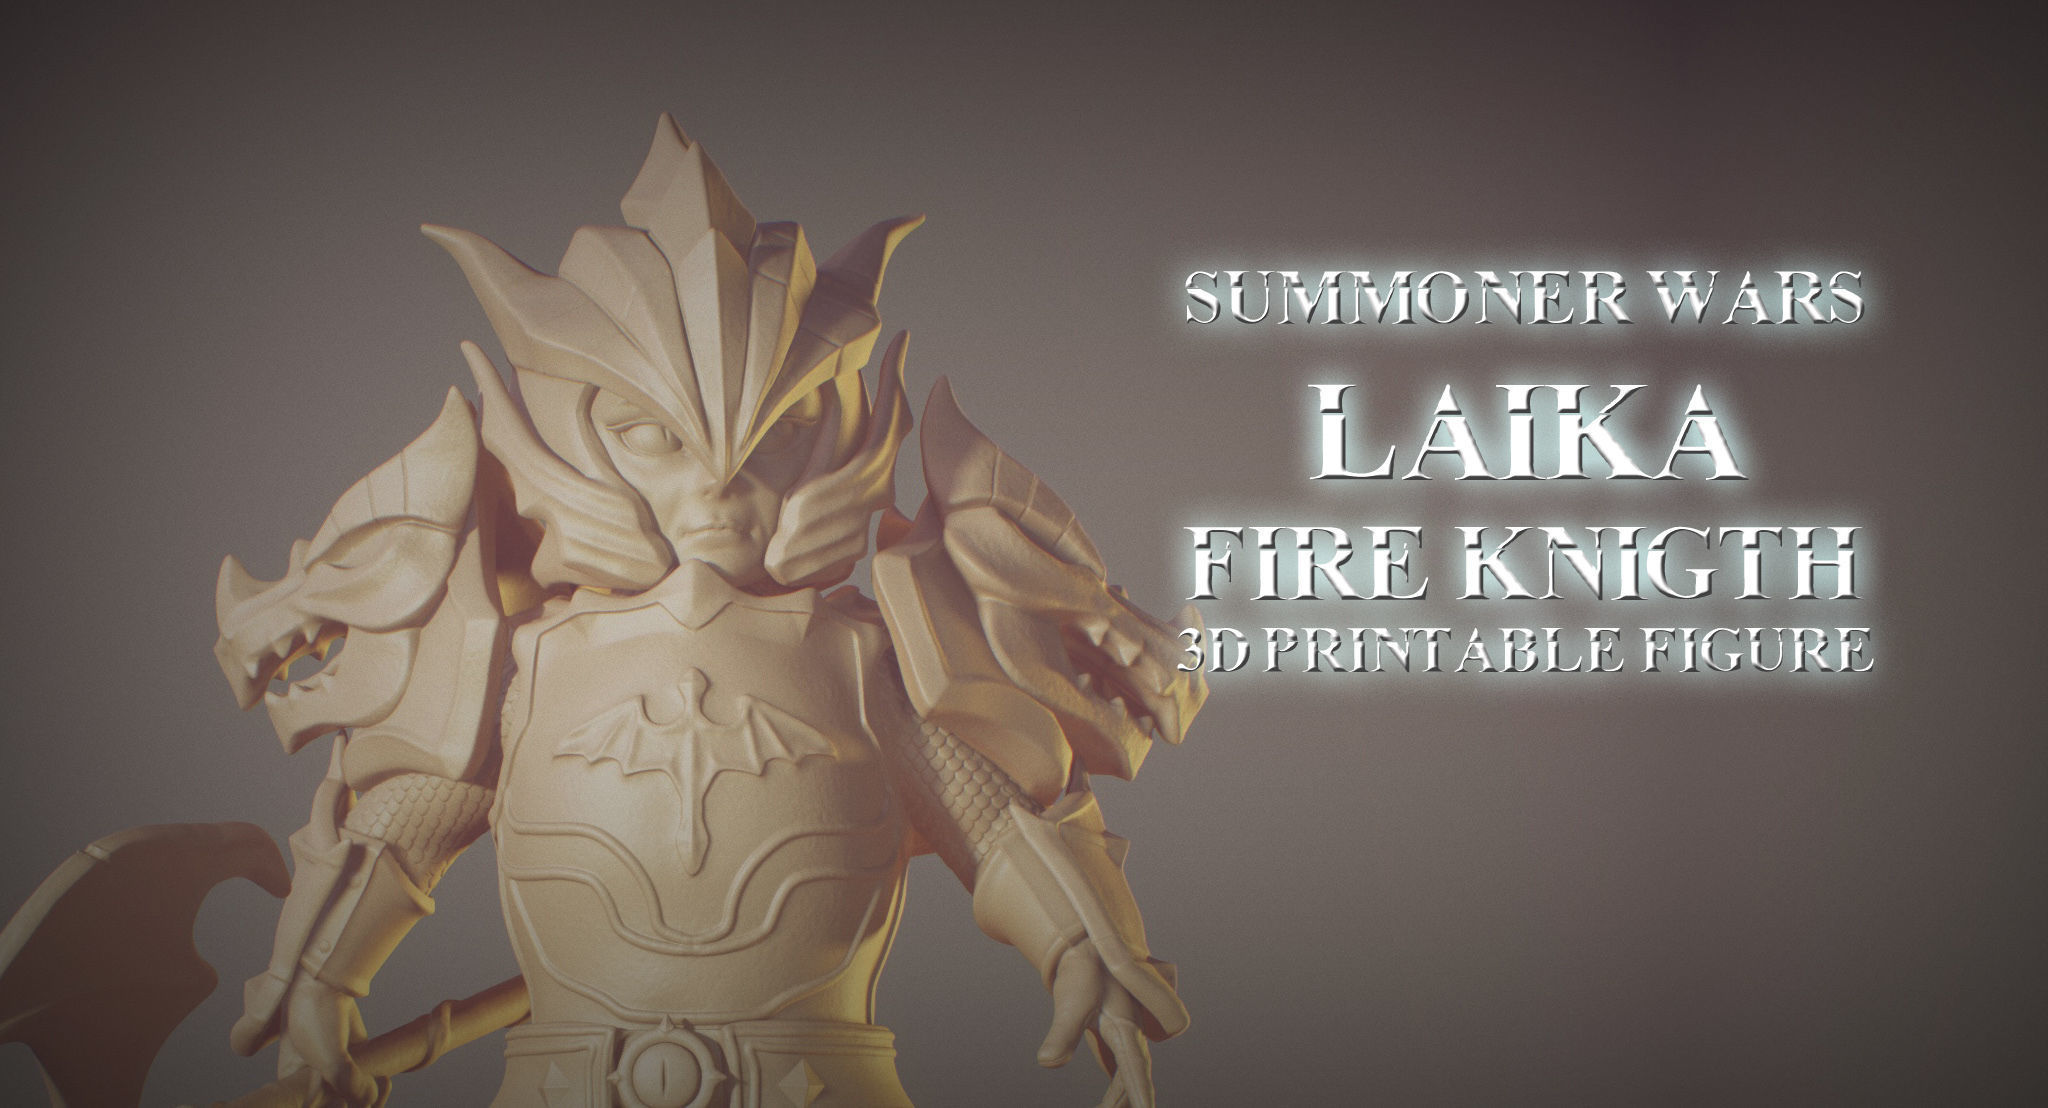 Laika Dragon Fire Knigth from Summoner Wars 3D printable figure